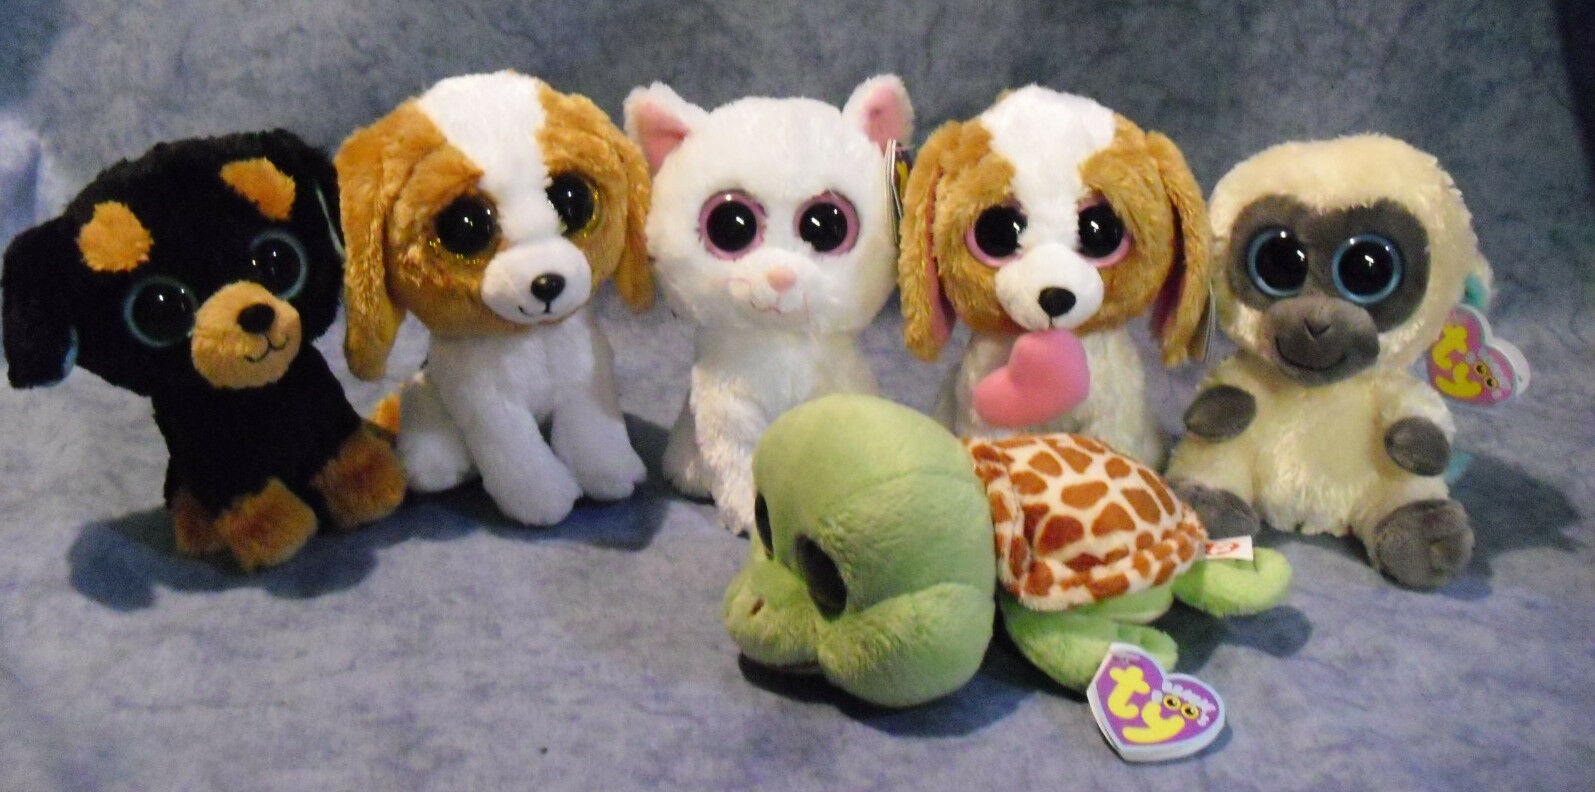 Ty 6 Inch Beanie Boos Plush Pepper The Cat Boo Collectable Cuddly Soft Toy  for sale online  fabfc9bc0fae